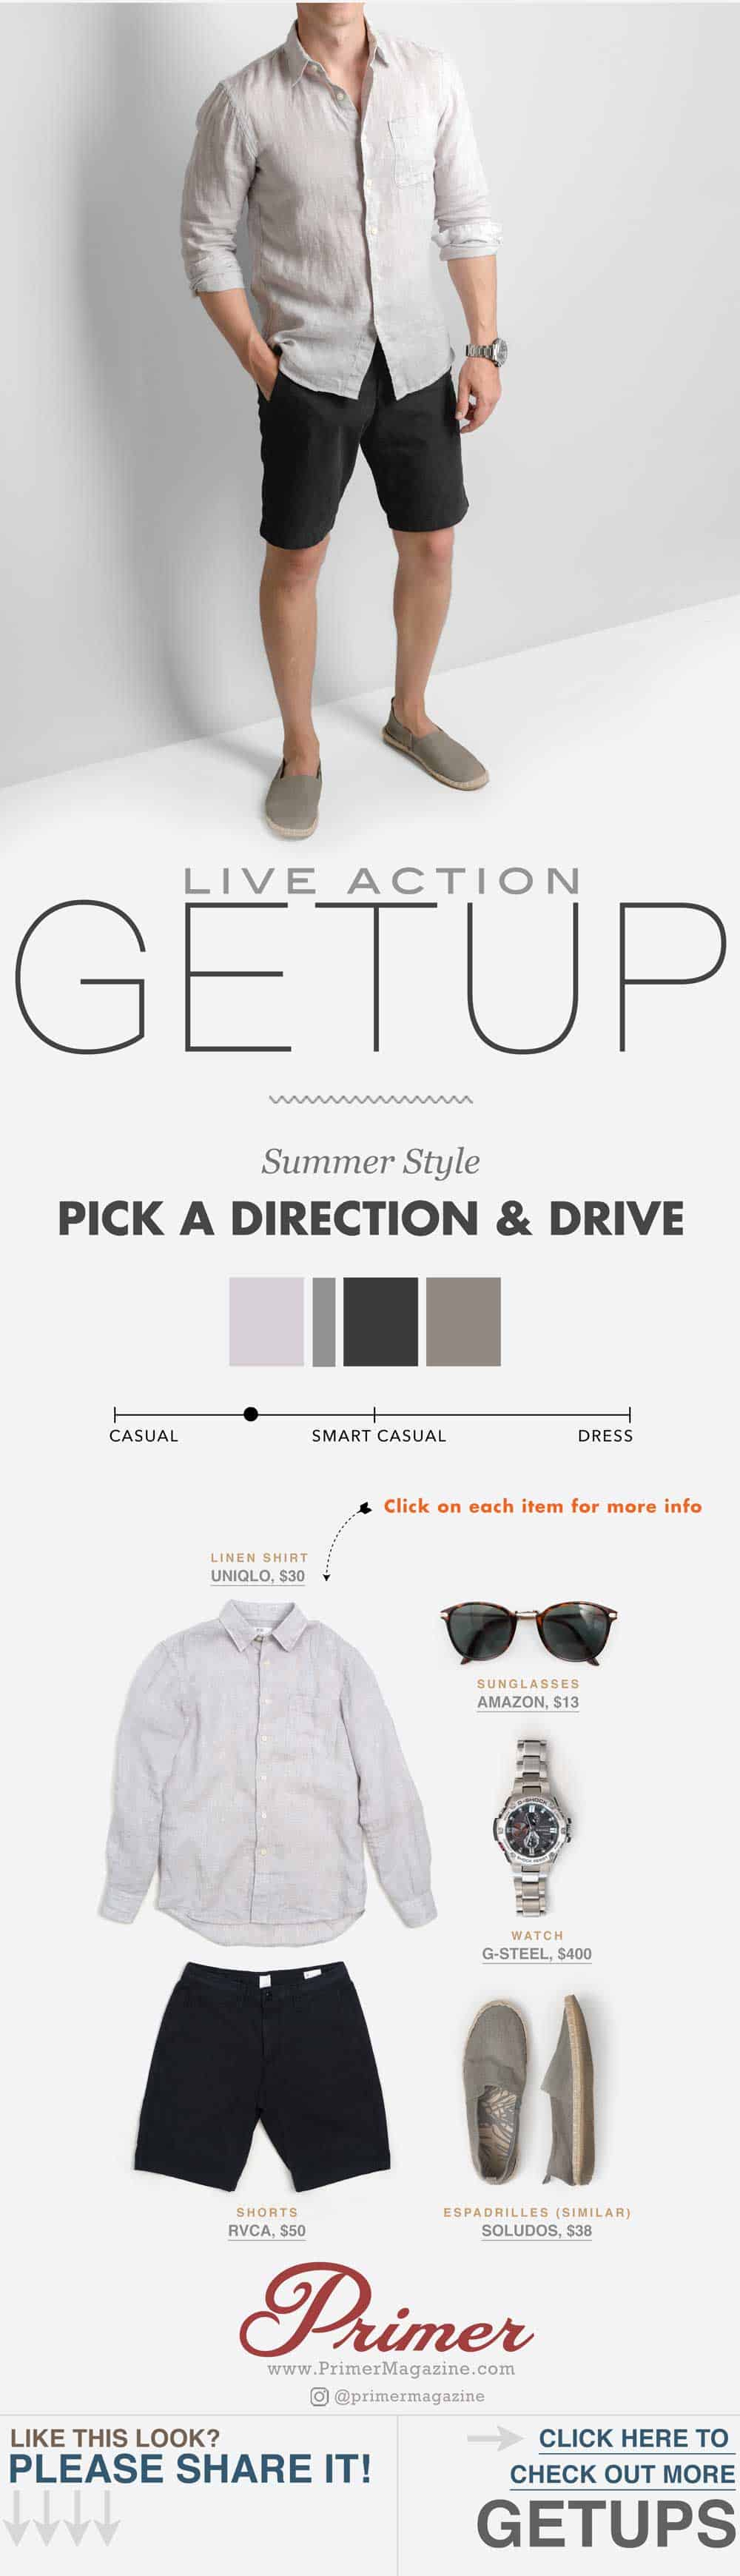 men's summer fashion inspiration the getup primer